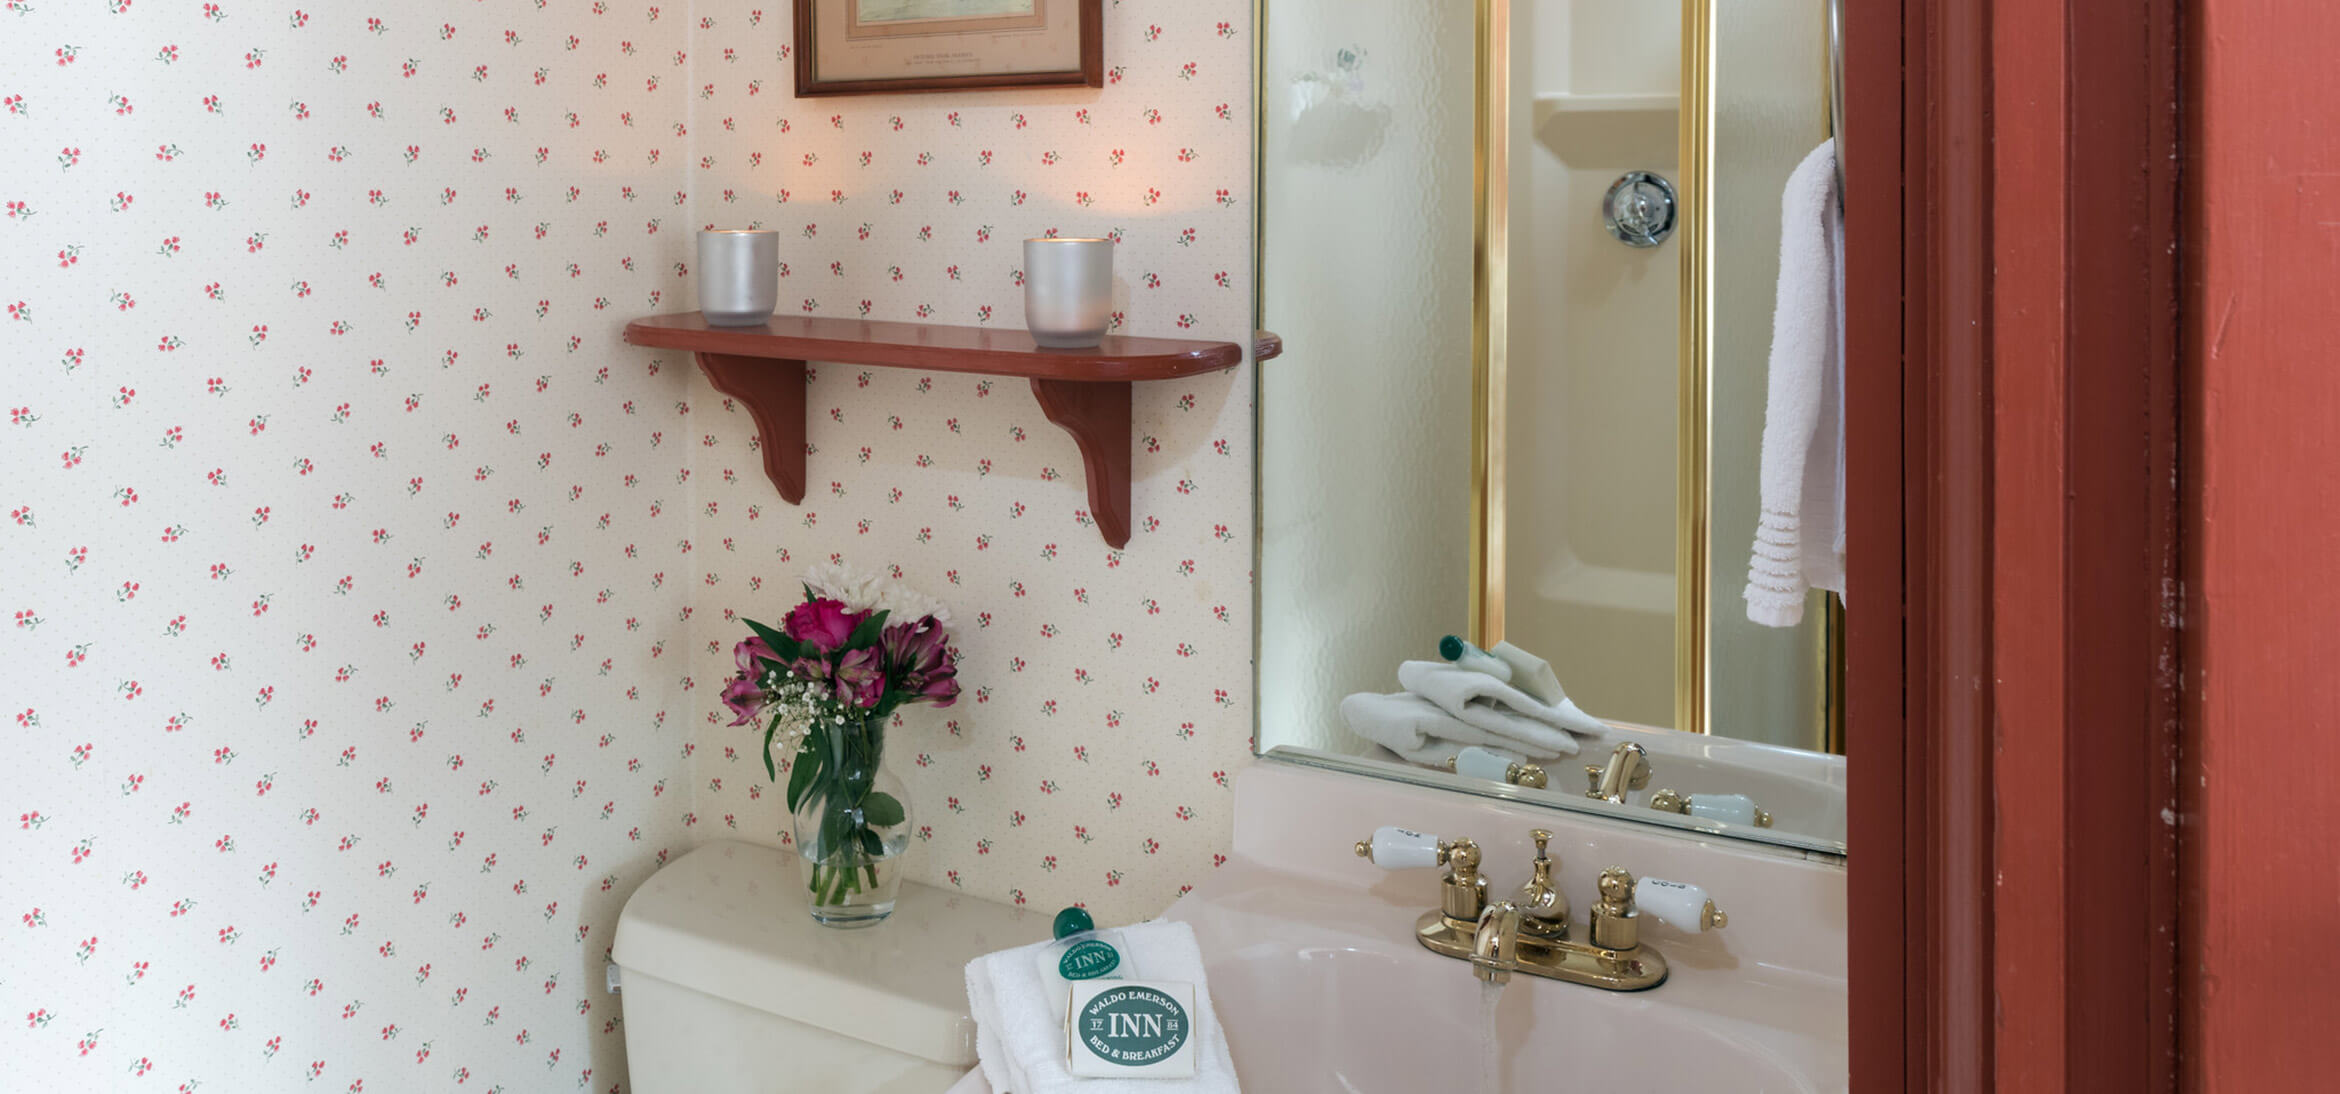 The bathroom in the Kingsbury Room at our B&B in Kennebunkport, Maine